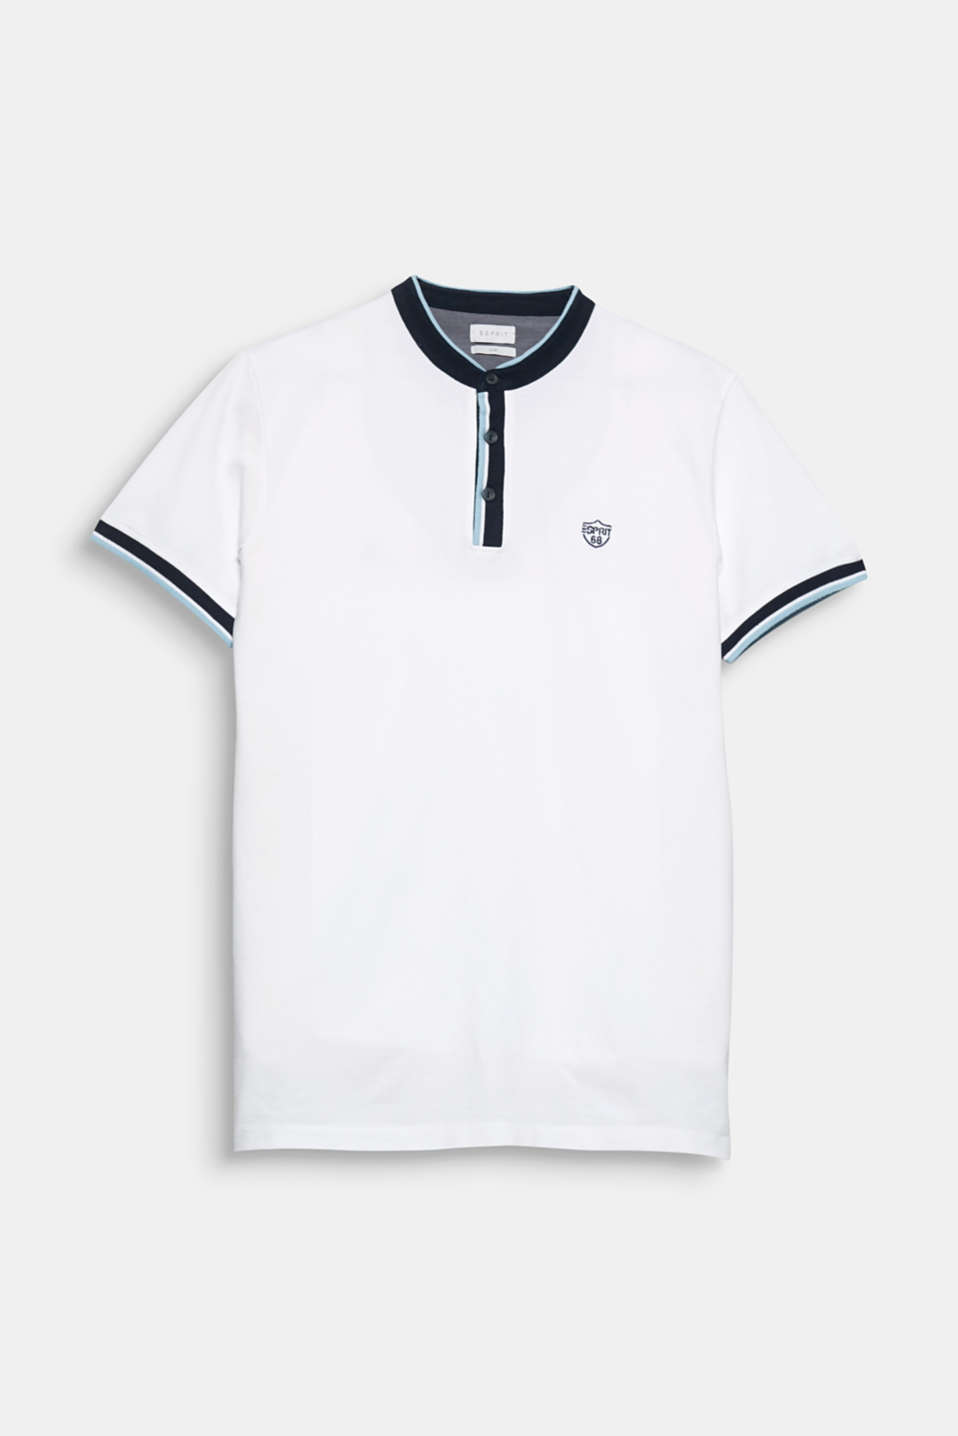 Sporty and modern! The striped stand-up collar and grainy piqué fabric give this polo shirt its look